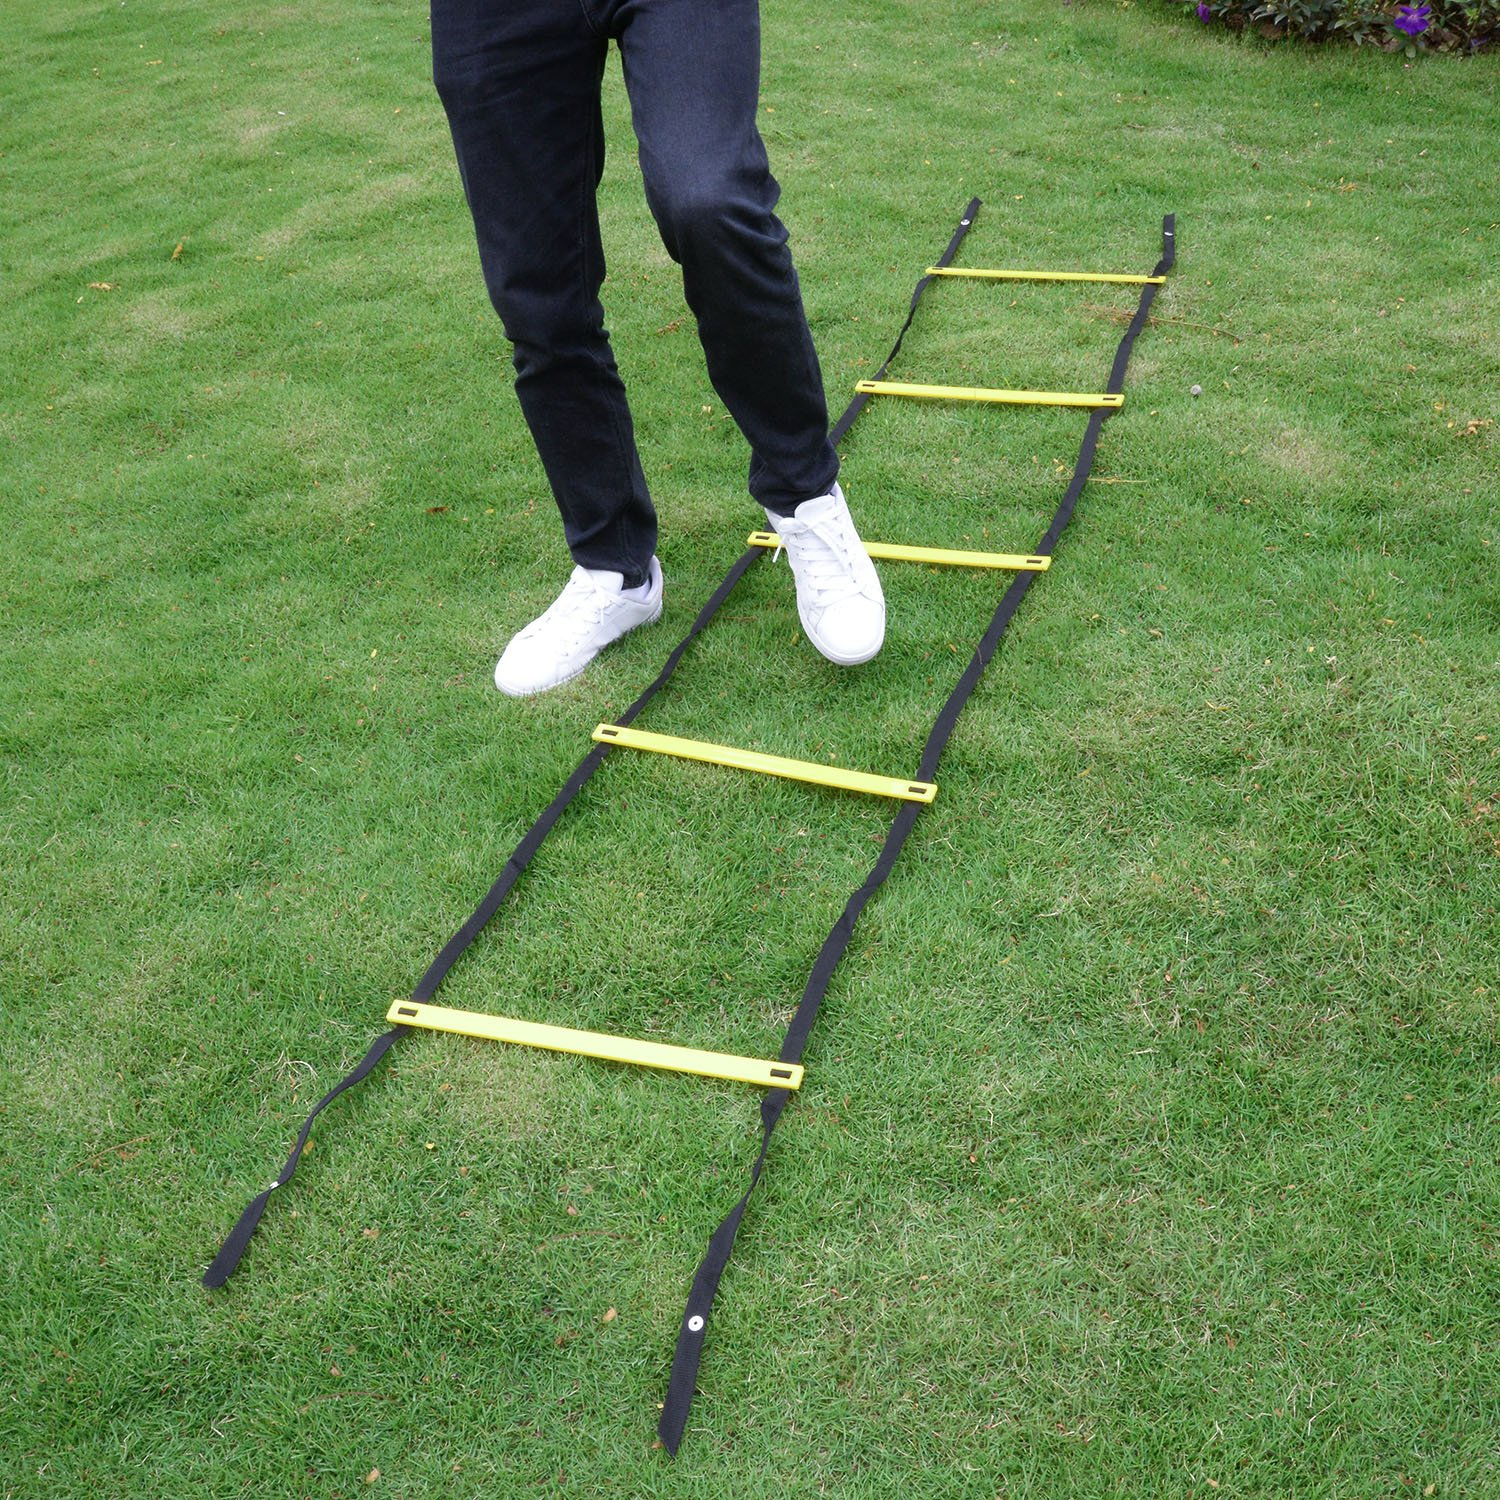 Kearui Speed Training Agility Ladder Quick Sports Ladder 12 Rung 6m Speed Training Equipment Adjustable Exercise Tool with Carry Bag for Soccer, Speed, Football Fitness Feet Training by Kearui (Image #4)